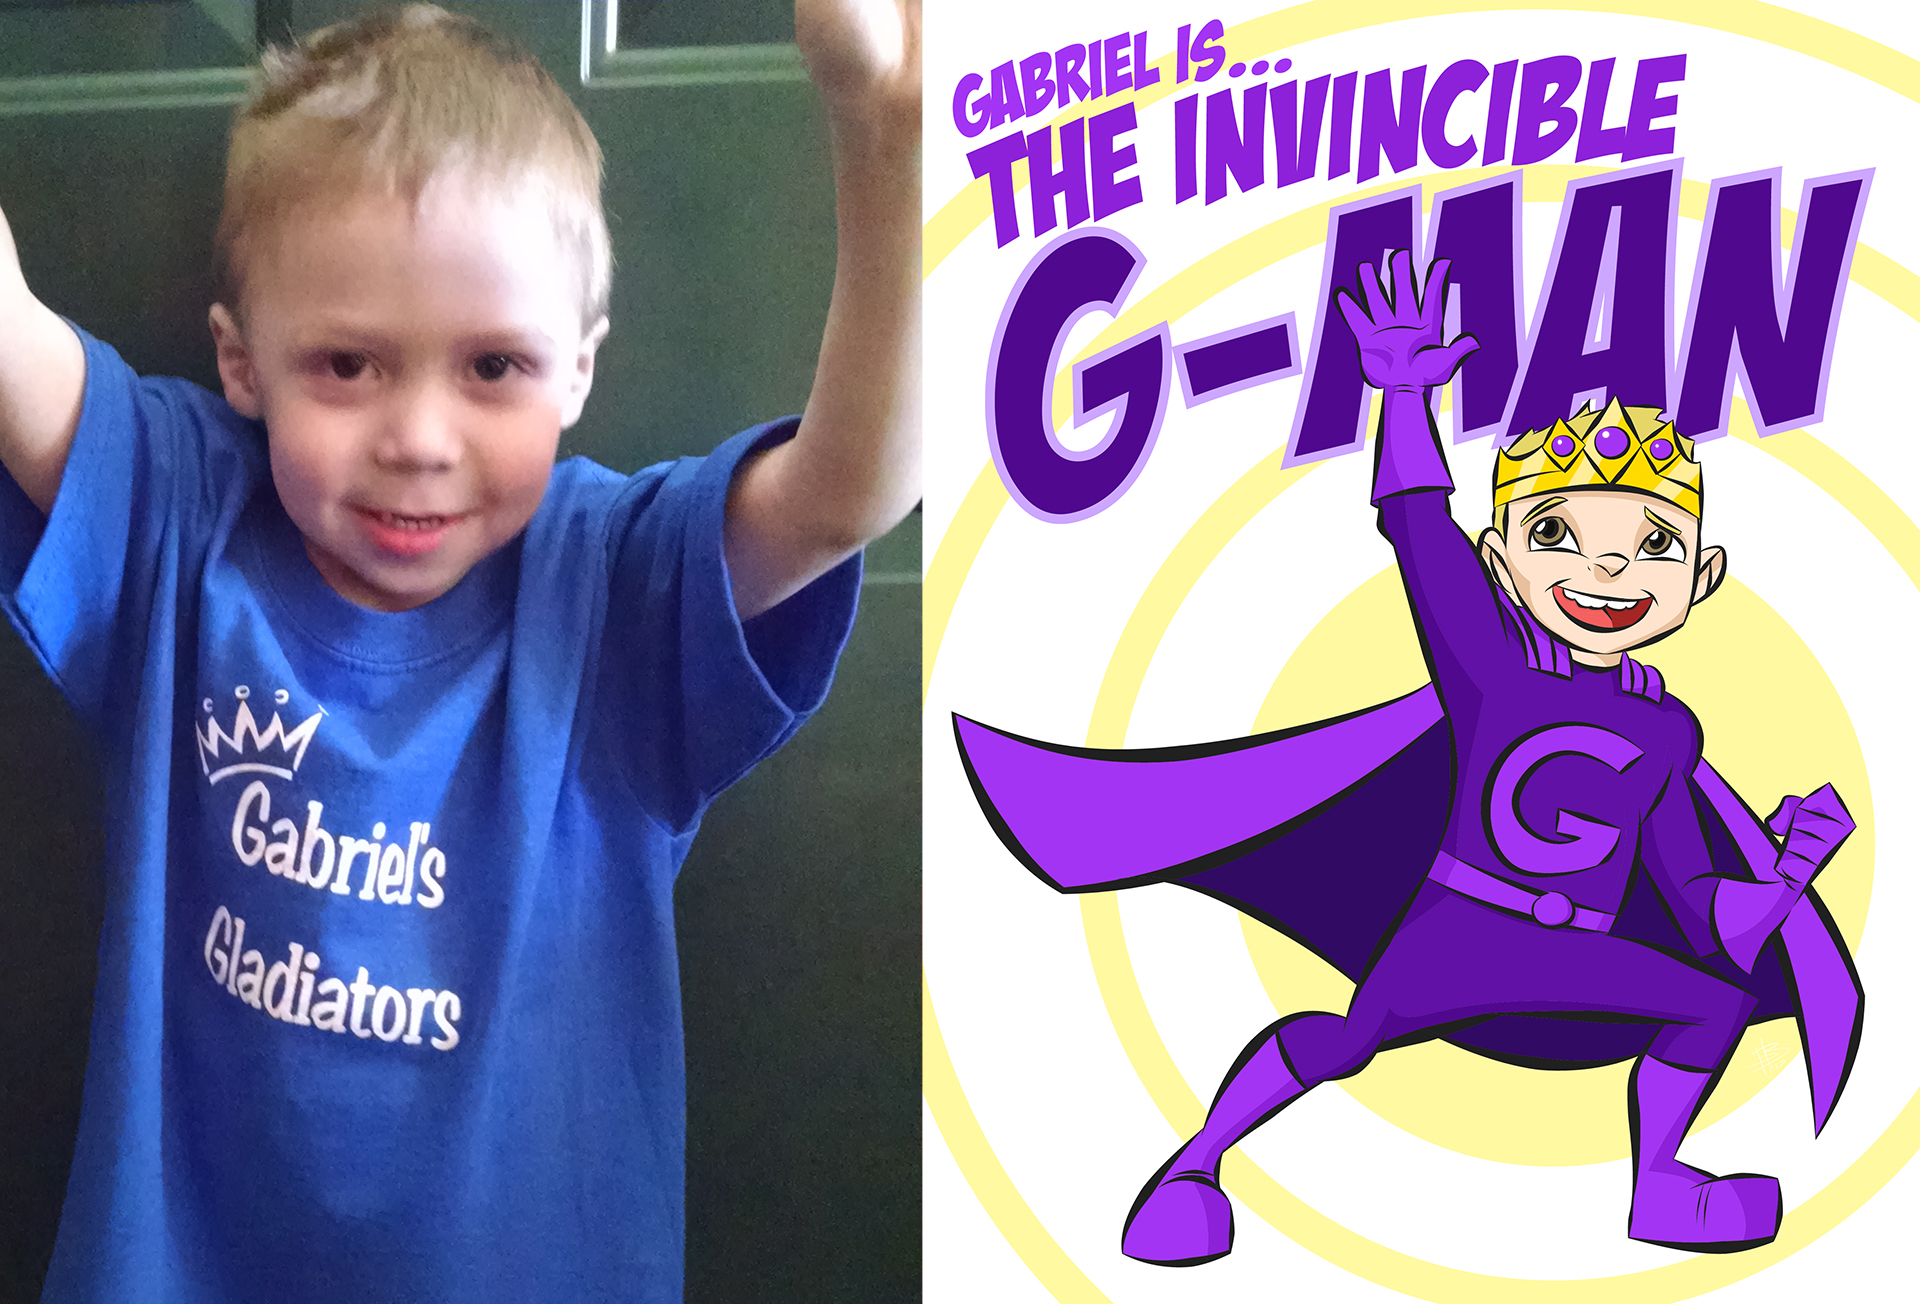 Gabriel (The Invincible G-MAN)